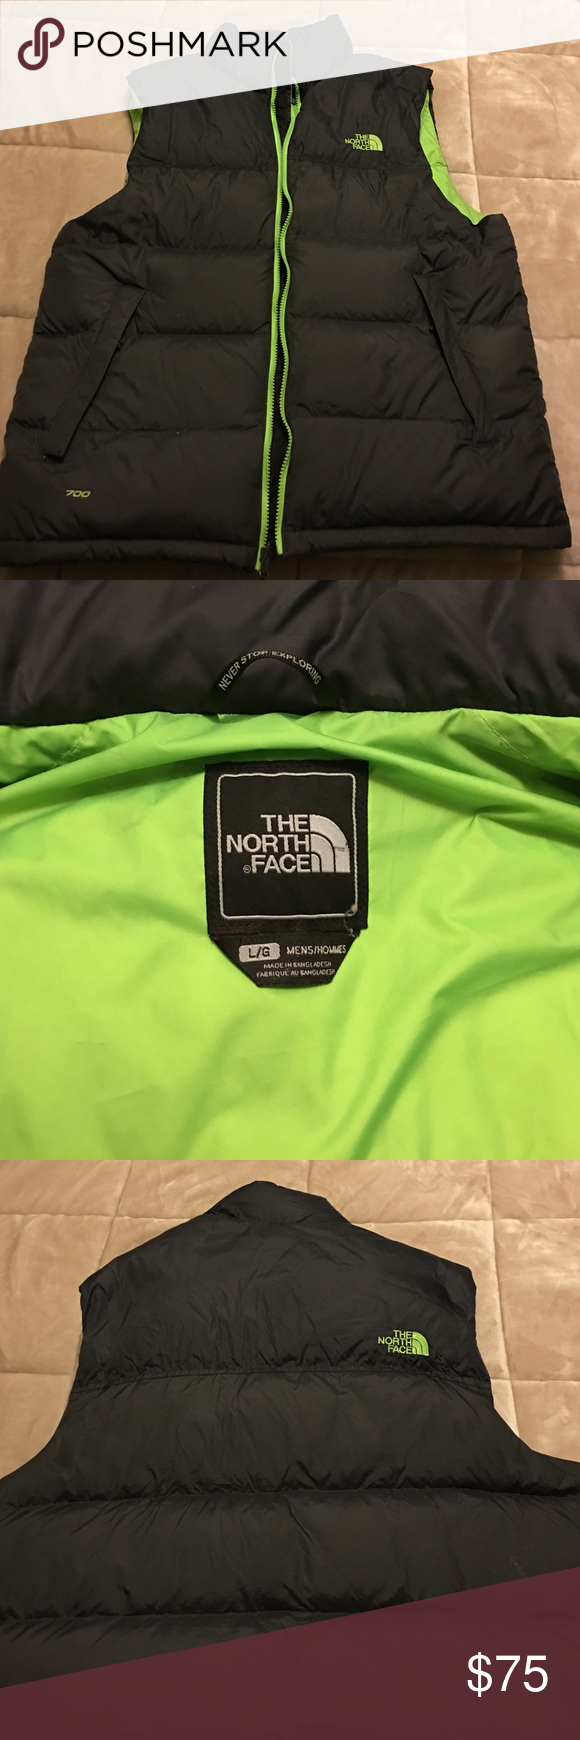 Men S The North Face Nuptse Vest Grey And Lime Green Men S Or Women S Nuptse Puffer Vest From The No North Face Nuptse Vest North Face Nuptse The North Face [ 1740 x 580 Pixel ]